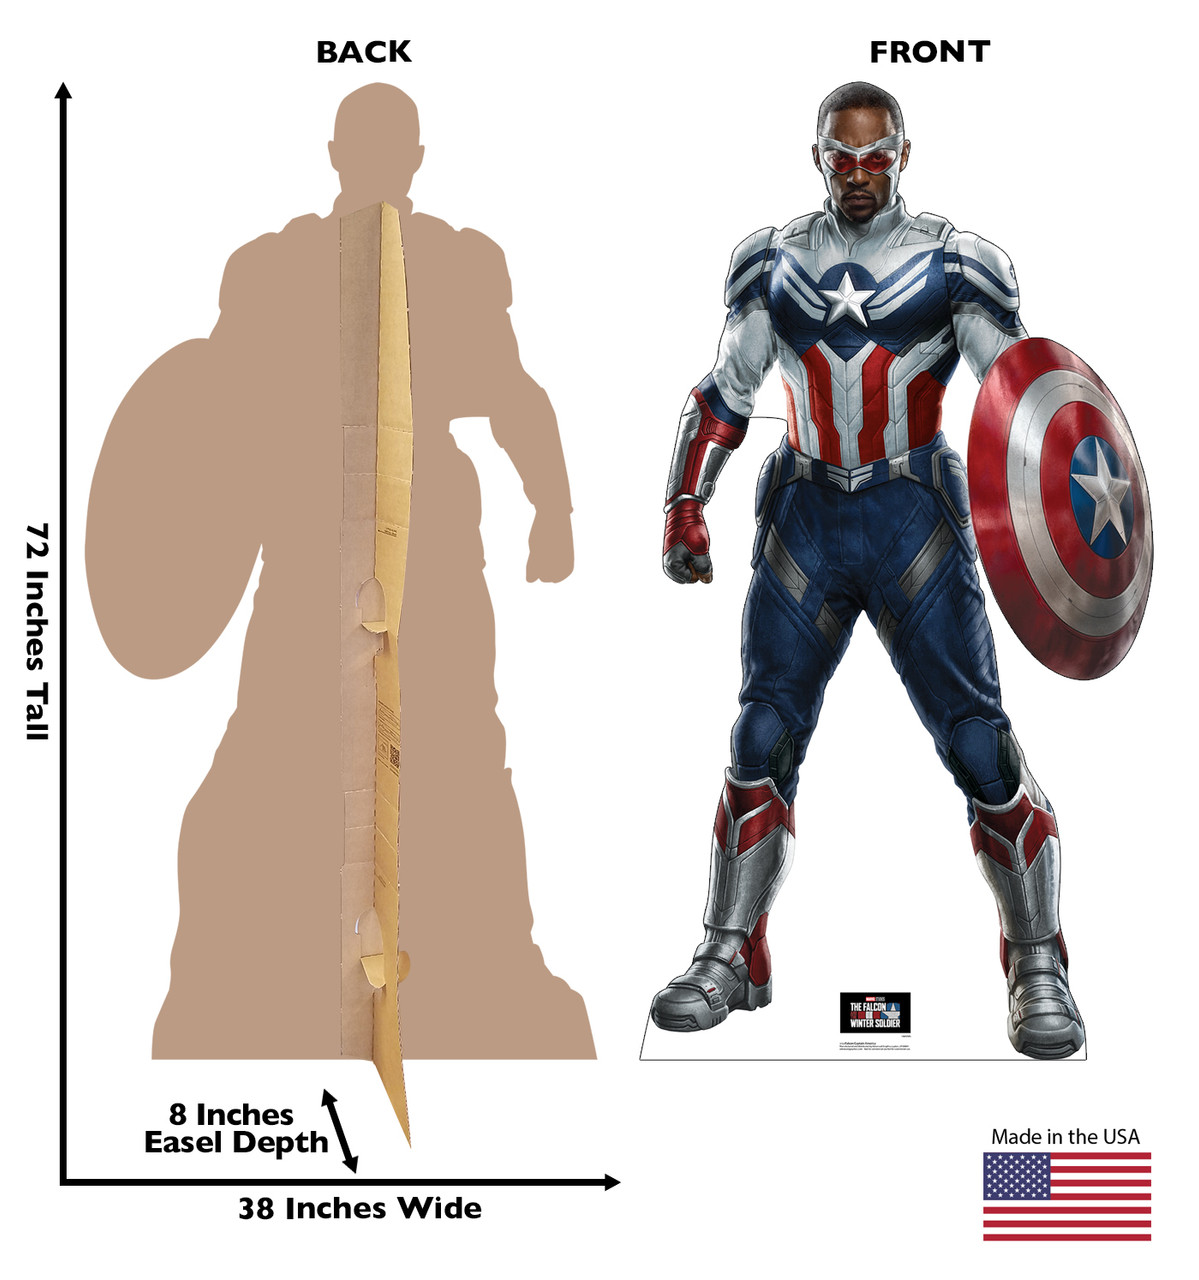 Life-size cardboard standee of Falcon Captain America with front and back dimensions.